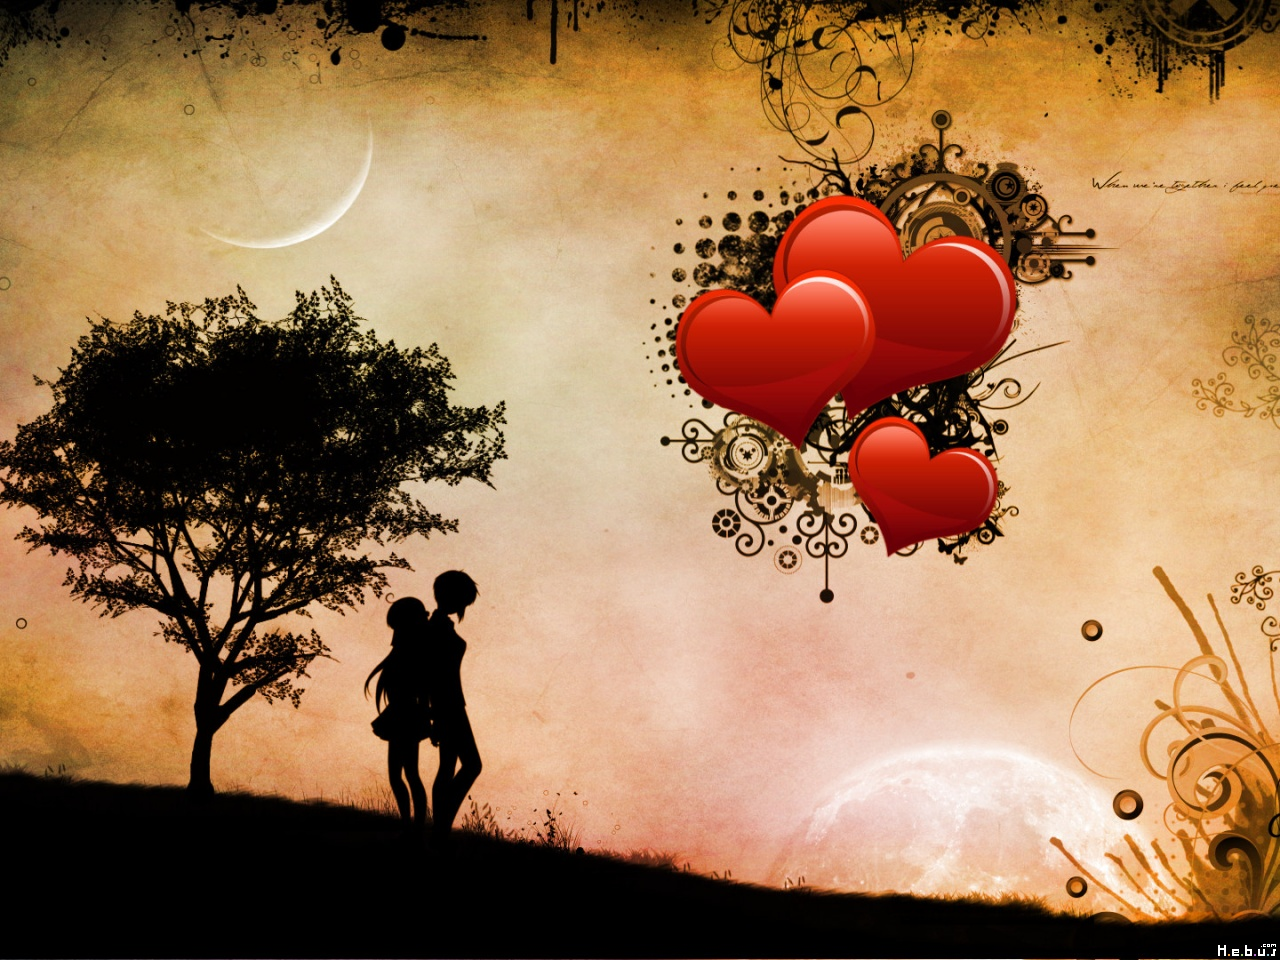 Free Download Hd Wallpapers Of Love 1280x960 For Your Desktop